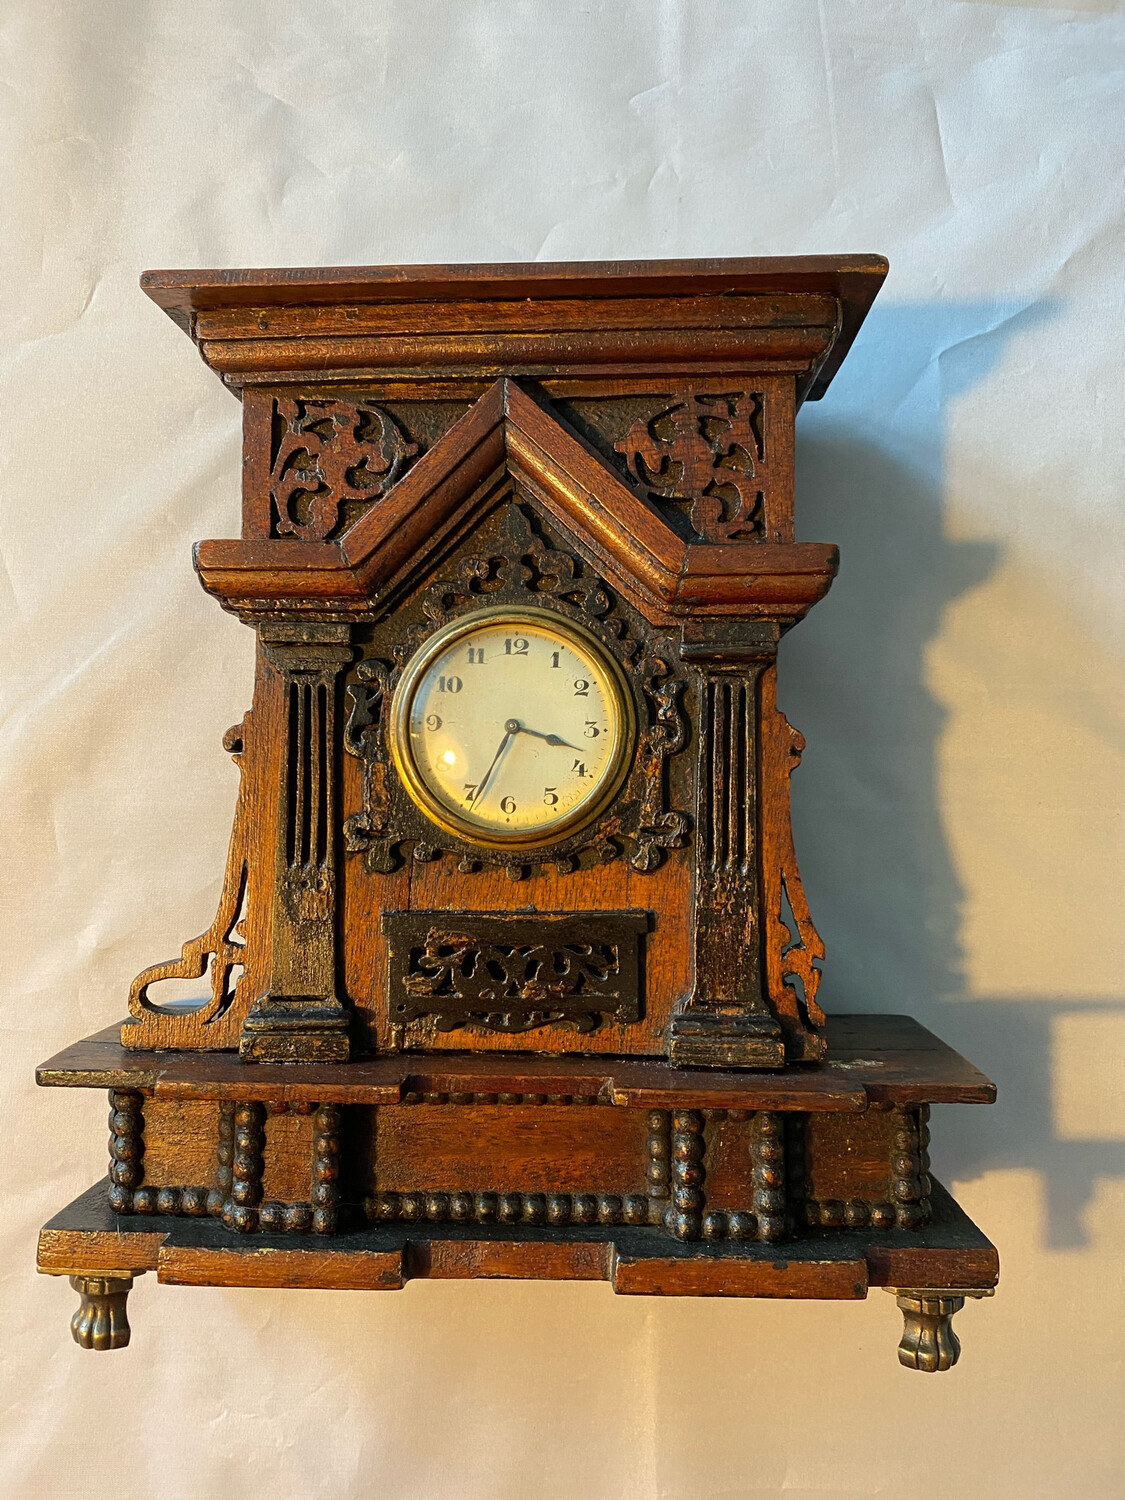 Handmade Mantle Clock Case with clock - probably late Victorian